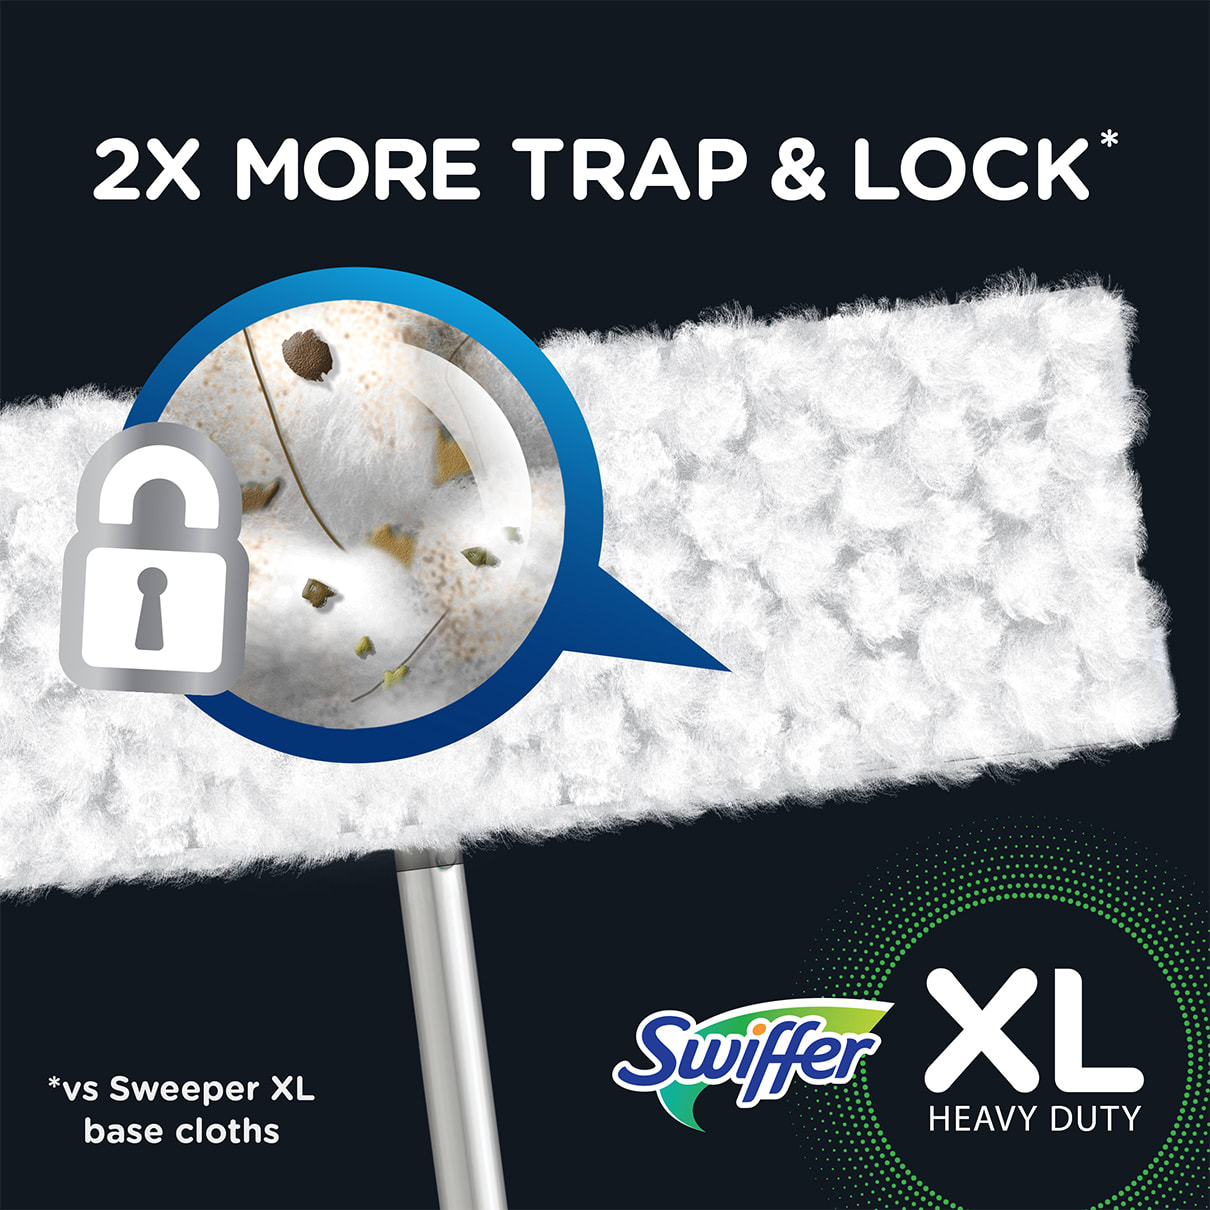 Sweeper Heavy Duty HD Trap Lock